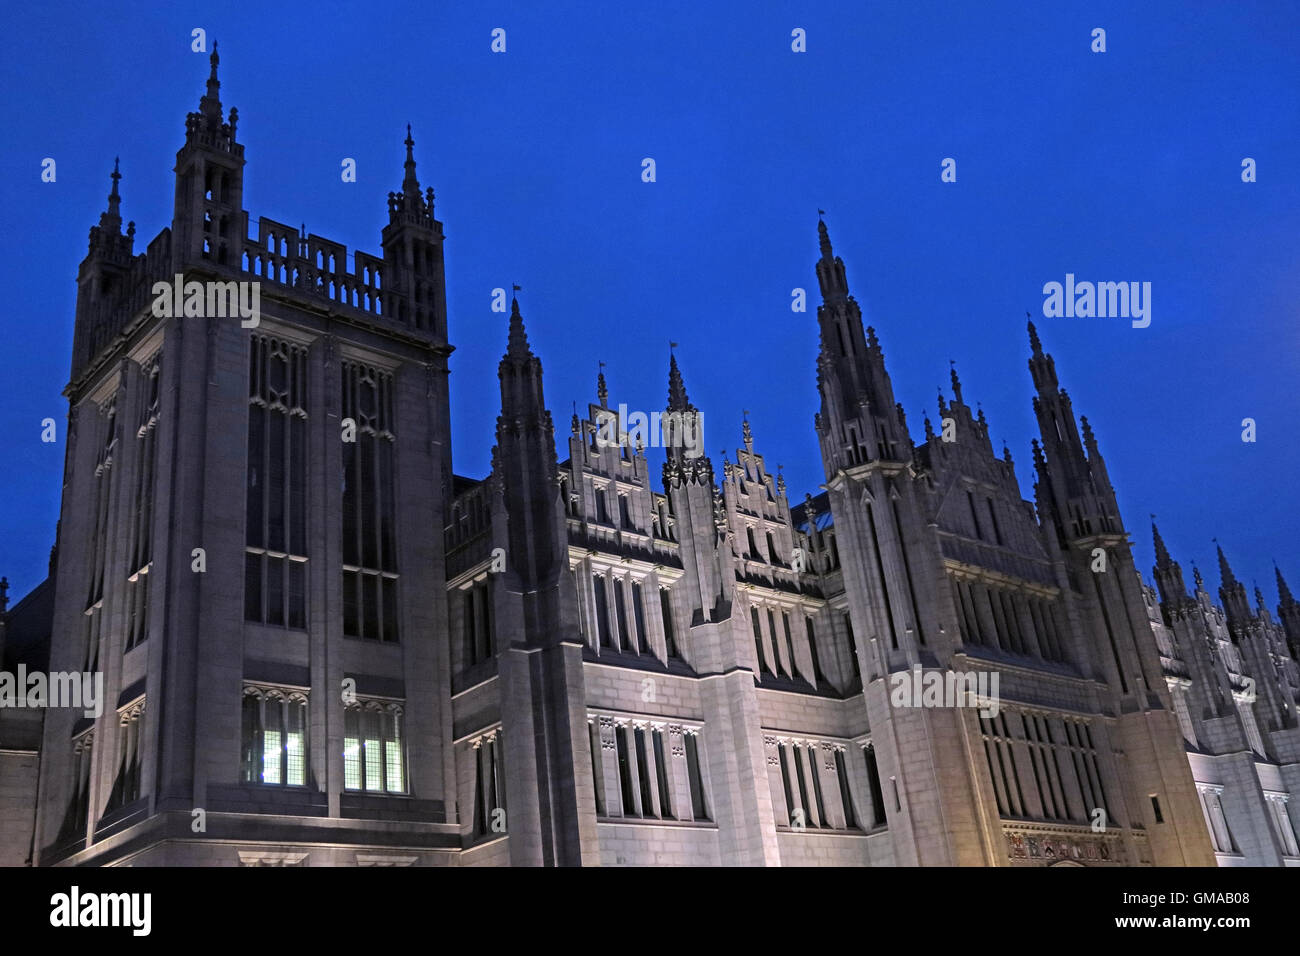 Marischal College granite building, Aberdeen City Council HQ, at dusk, Broad Street, Aberdeen, AB10 1AB - Stock Image